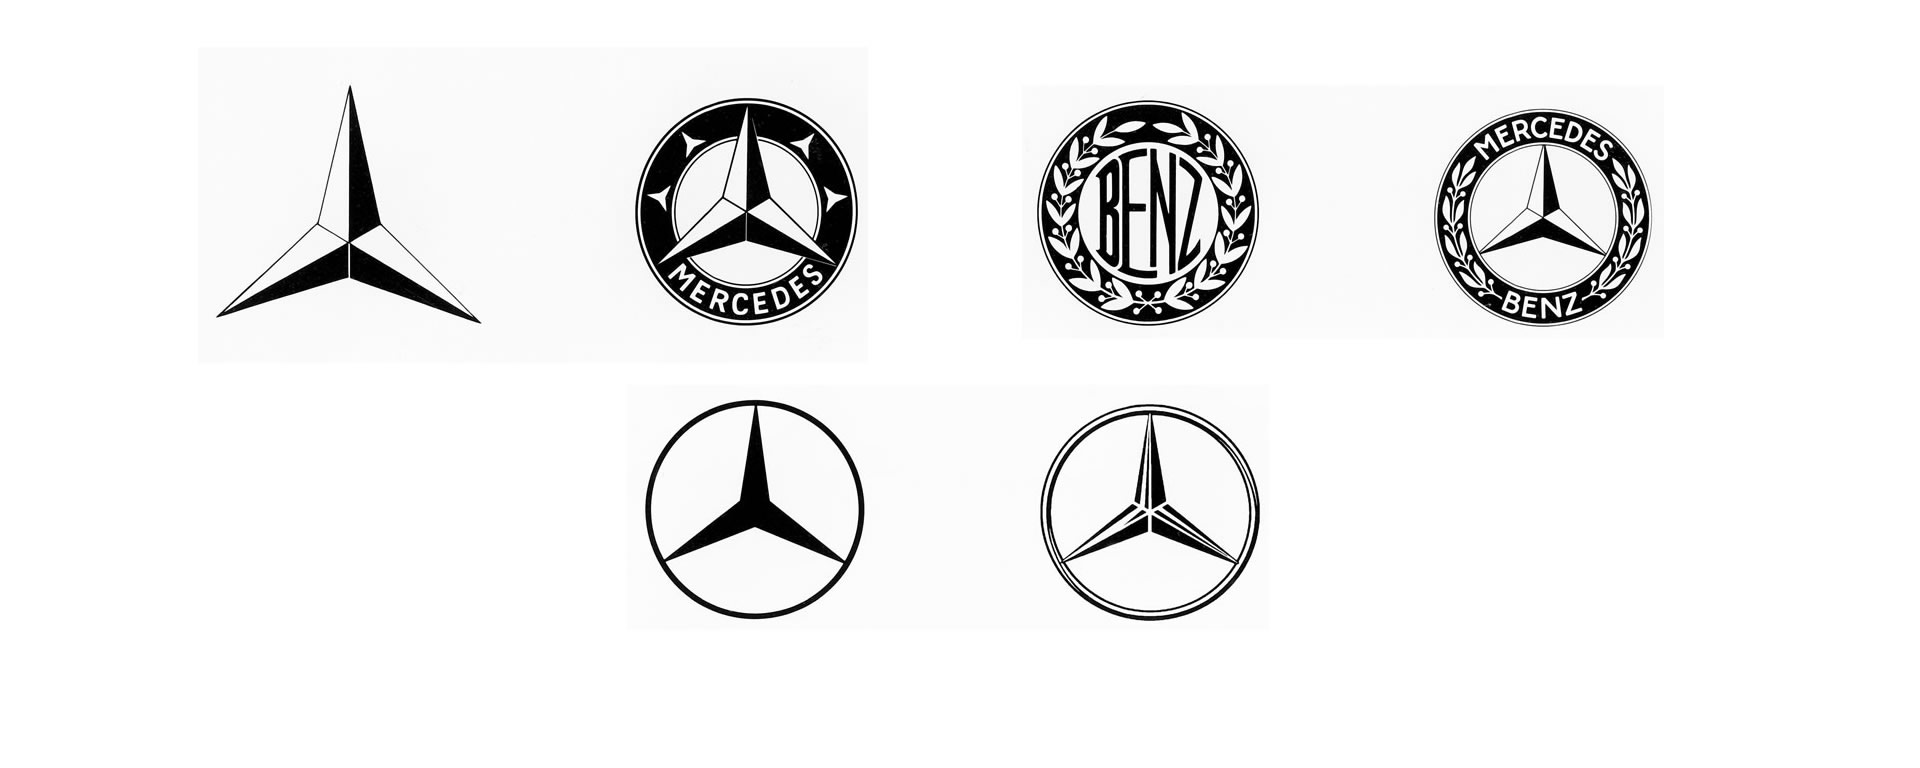 The True Story Behind the Mercedes-Benz Three-Pointed Star